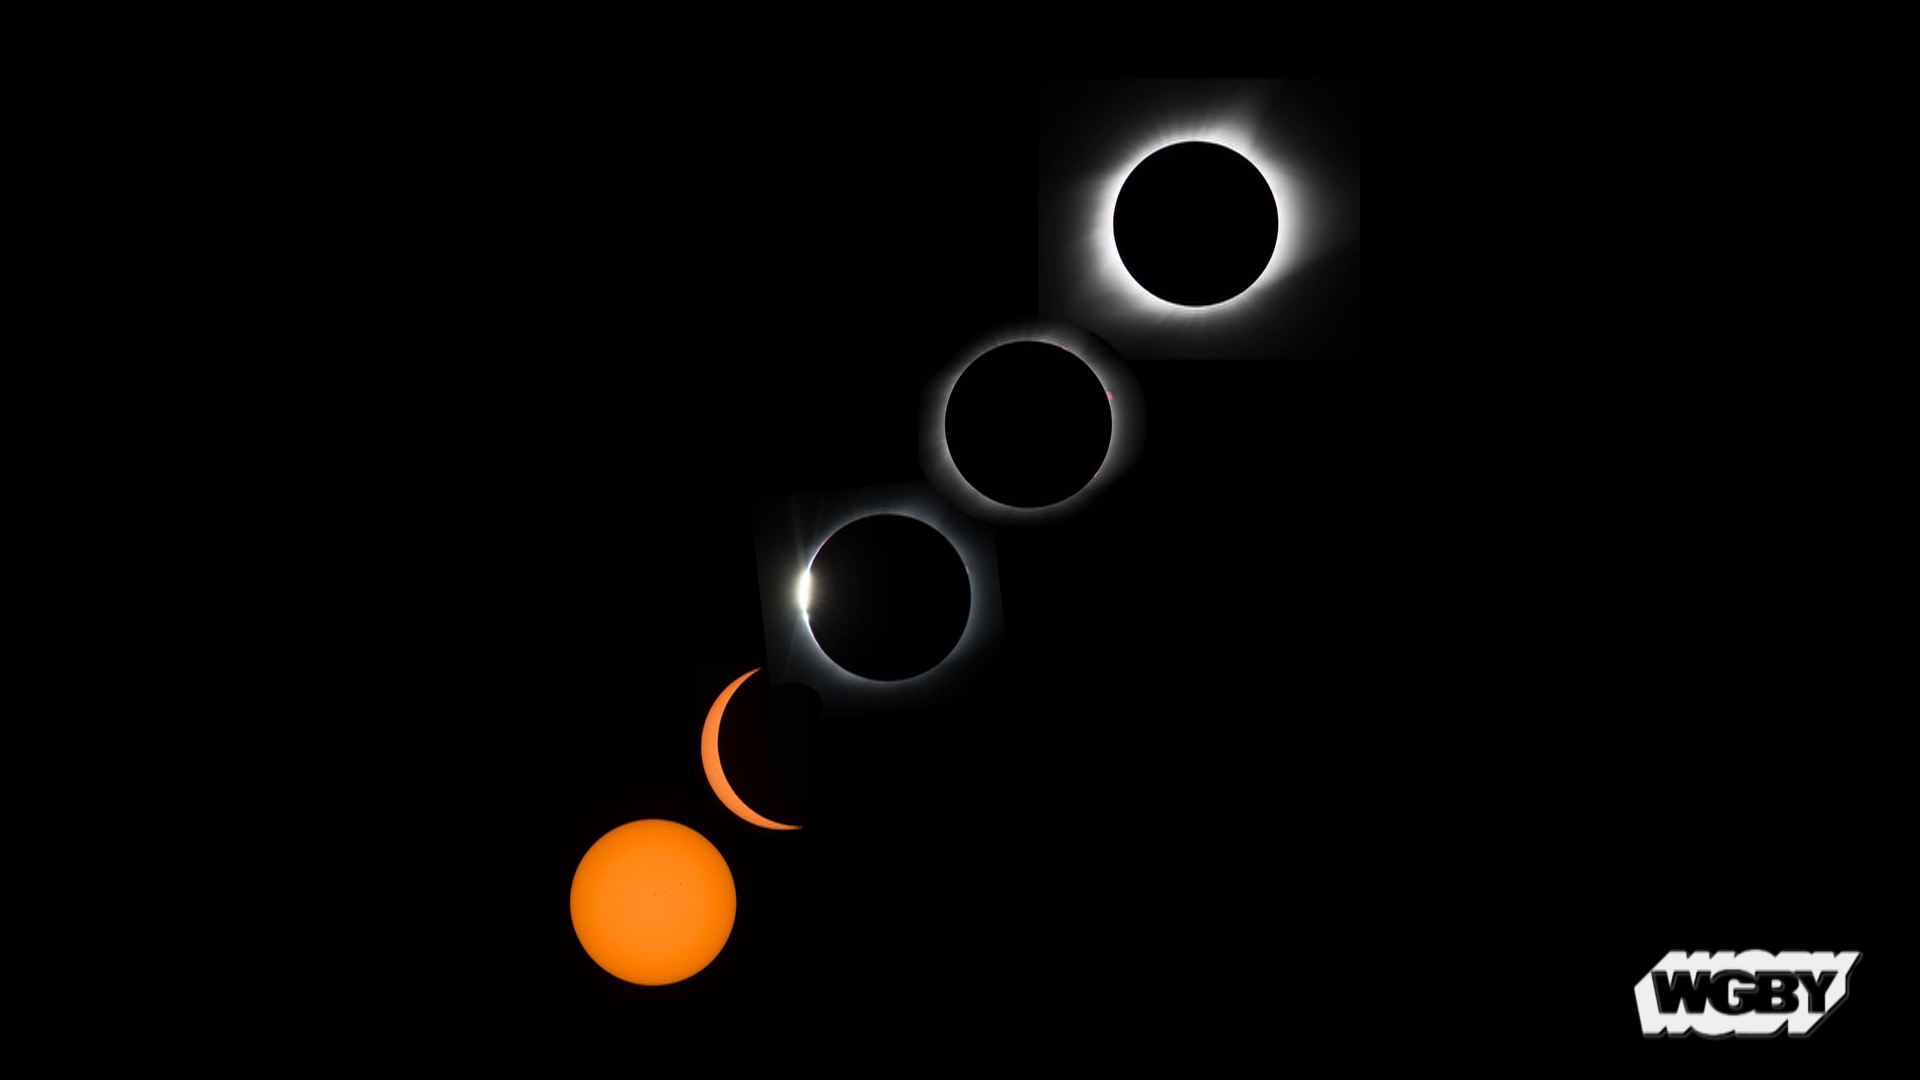 Williams College Astronomy Professor Jay Pasachoff and his team traveled to Salem, OR for a rare, two-minute window to study sun's corona during the 2017 Solar Eclipse. His findings from the August 21, 2017 solar eclipse were reported at a recent meeting of the American Astronomical Society.